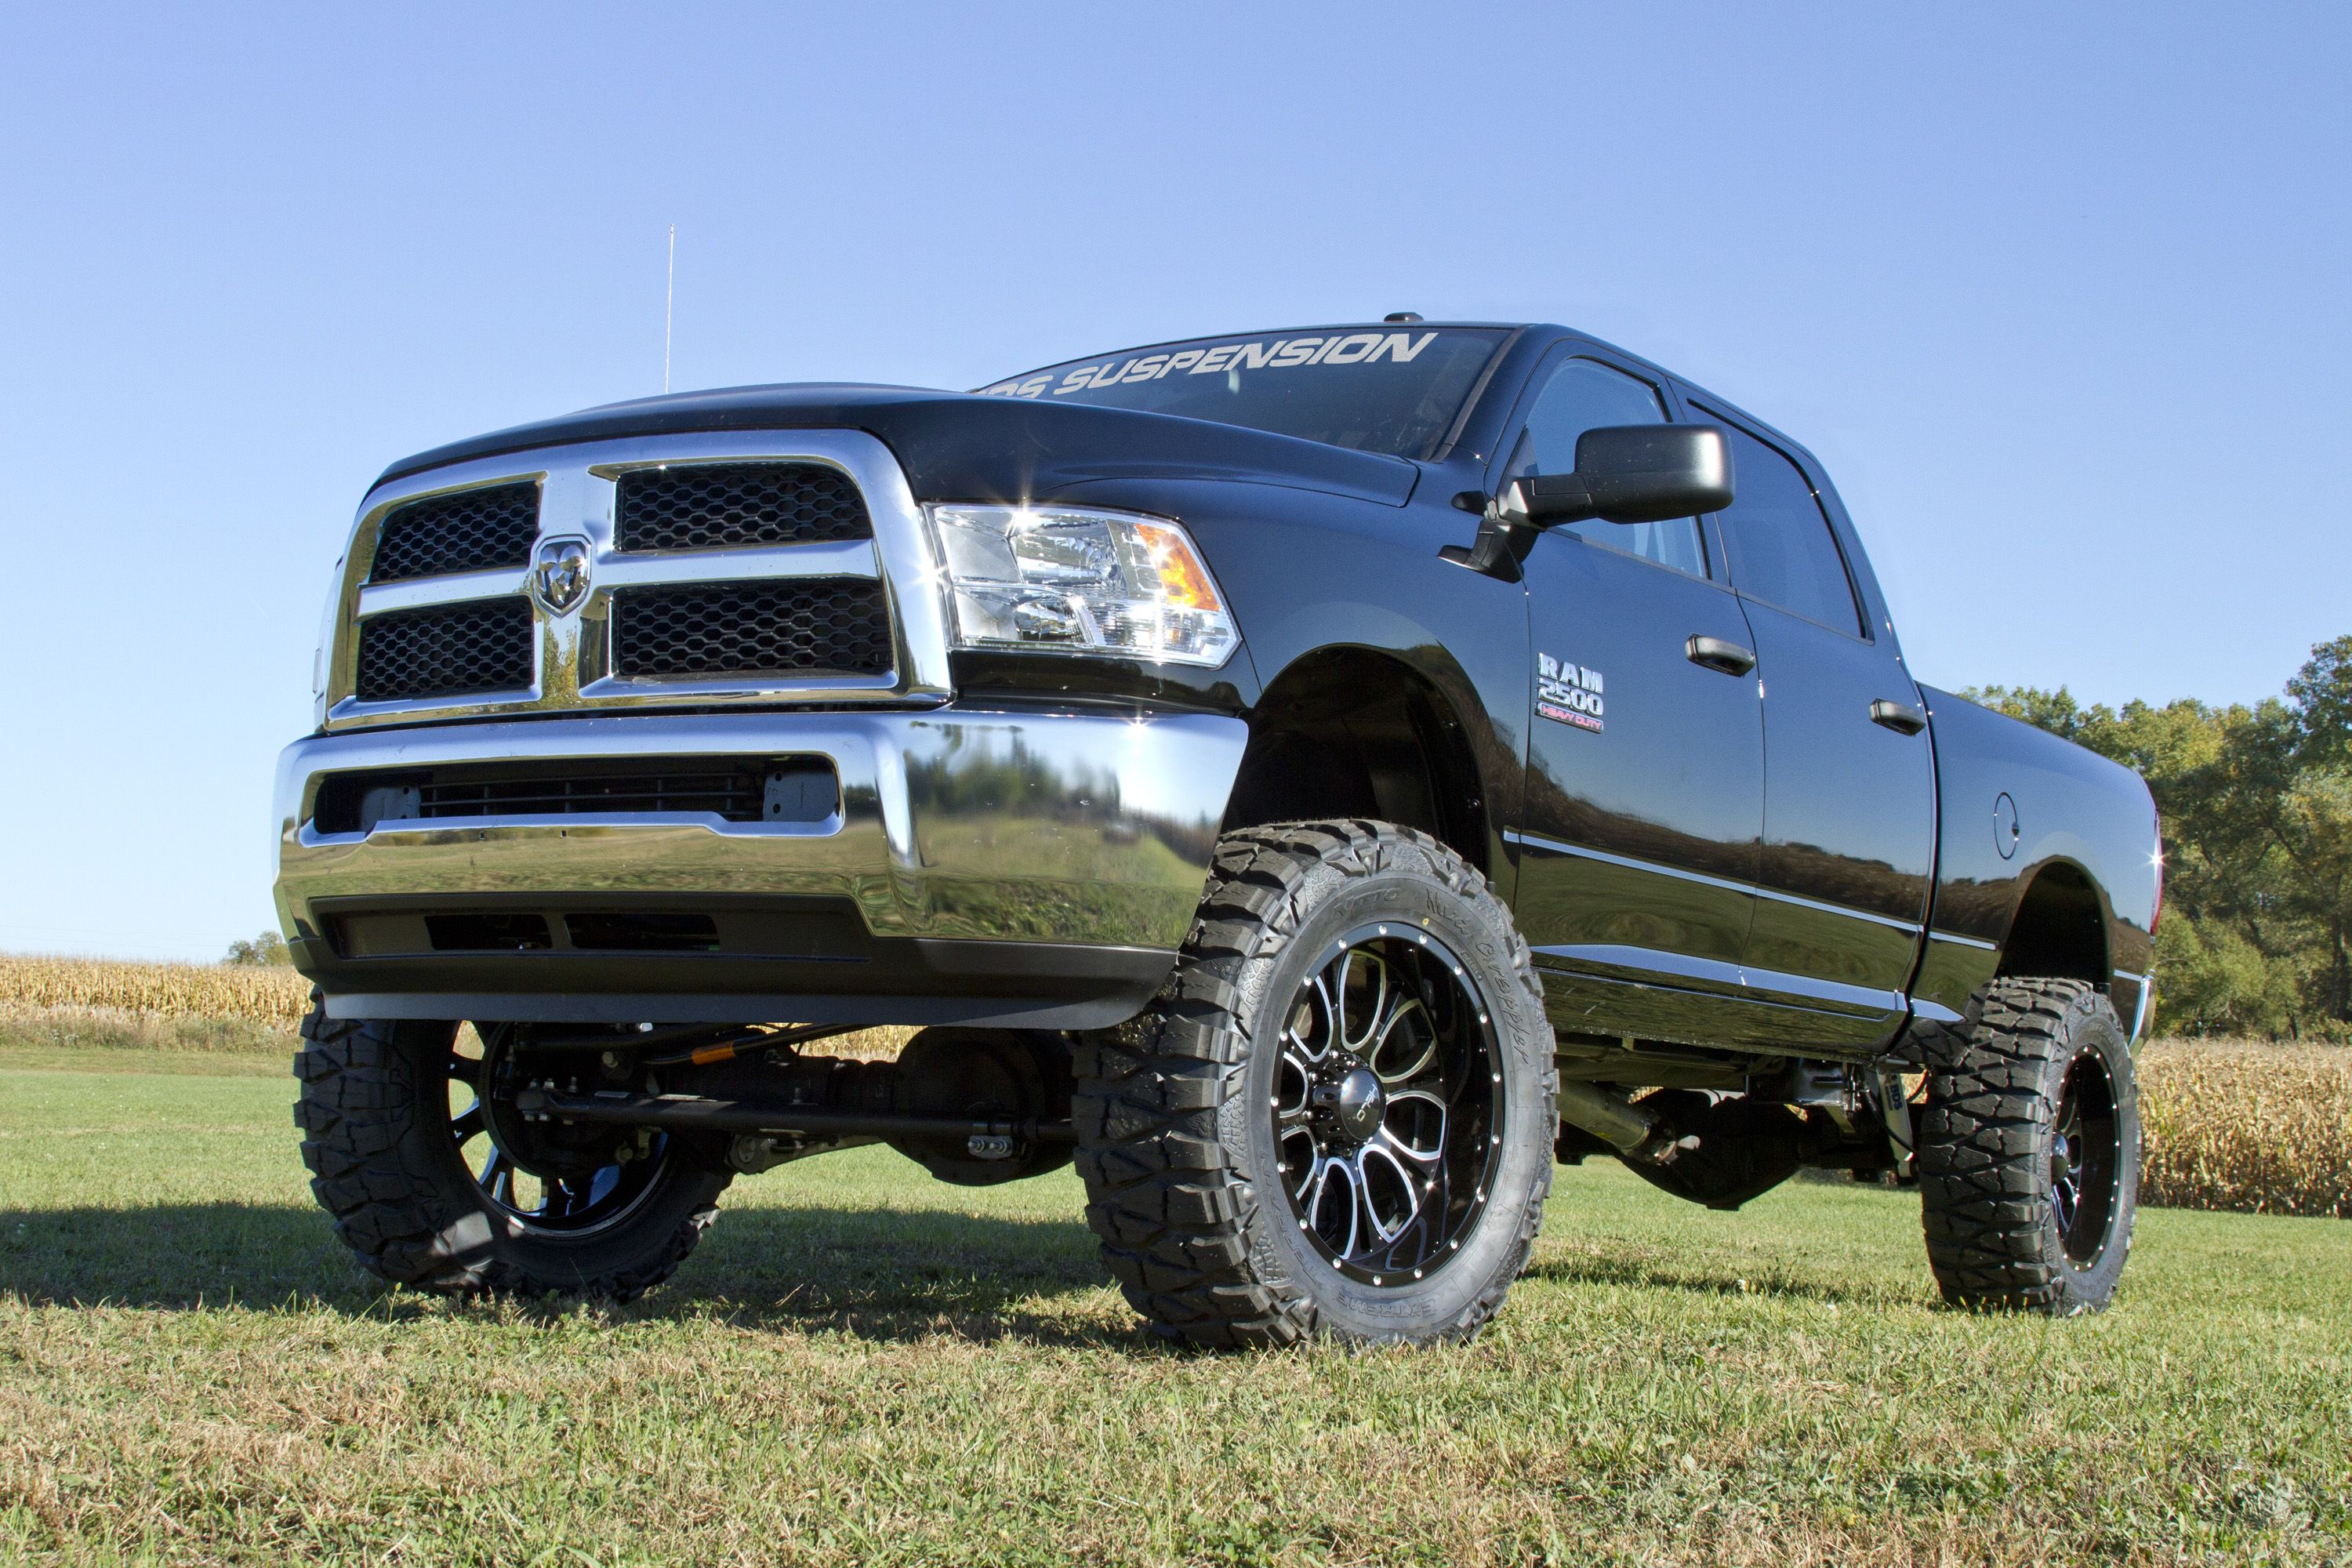 dodge - Dodge Truck 2015 Lifted